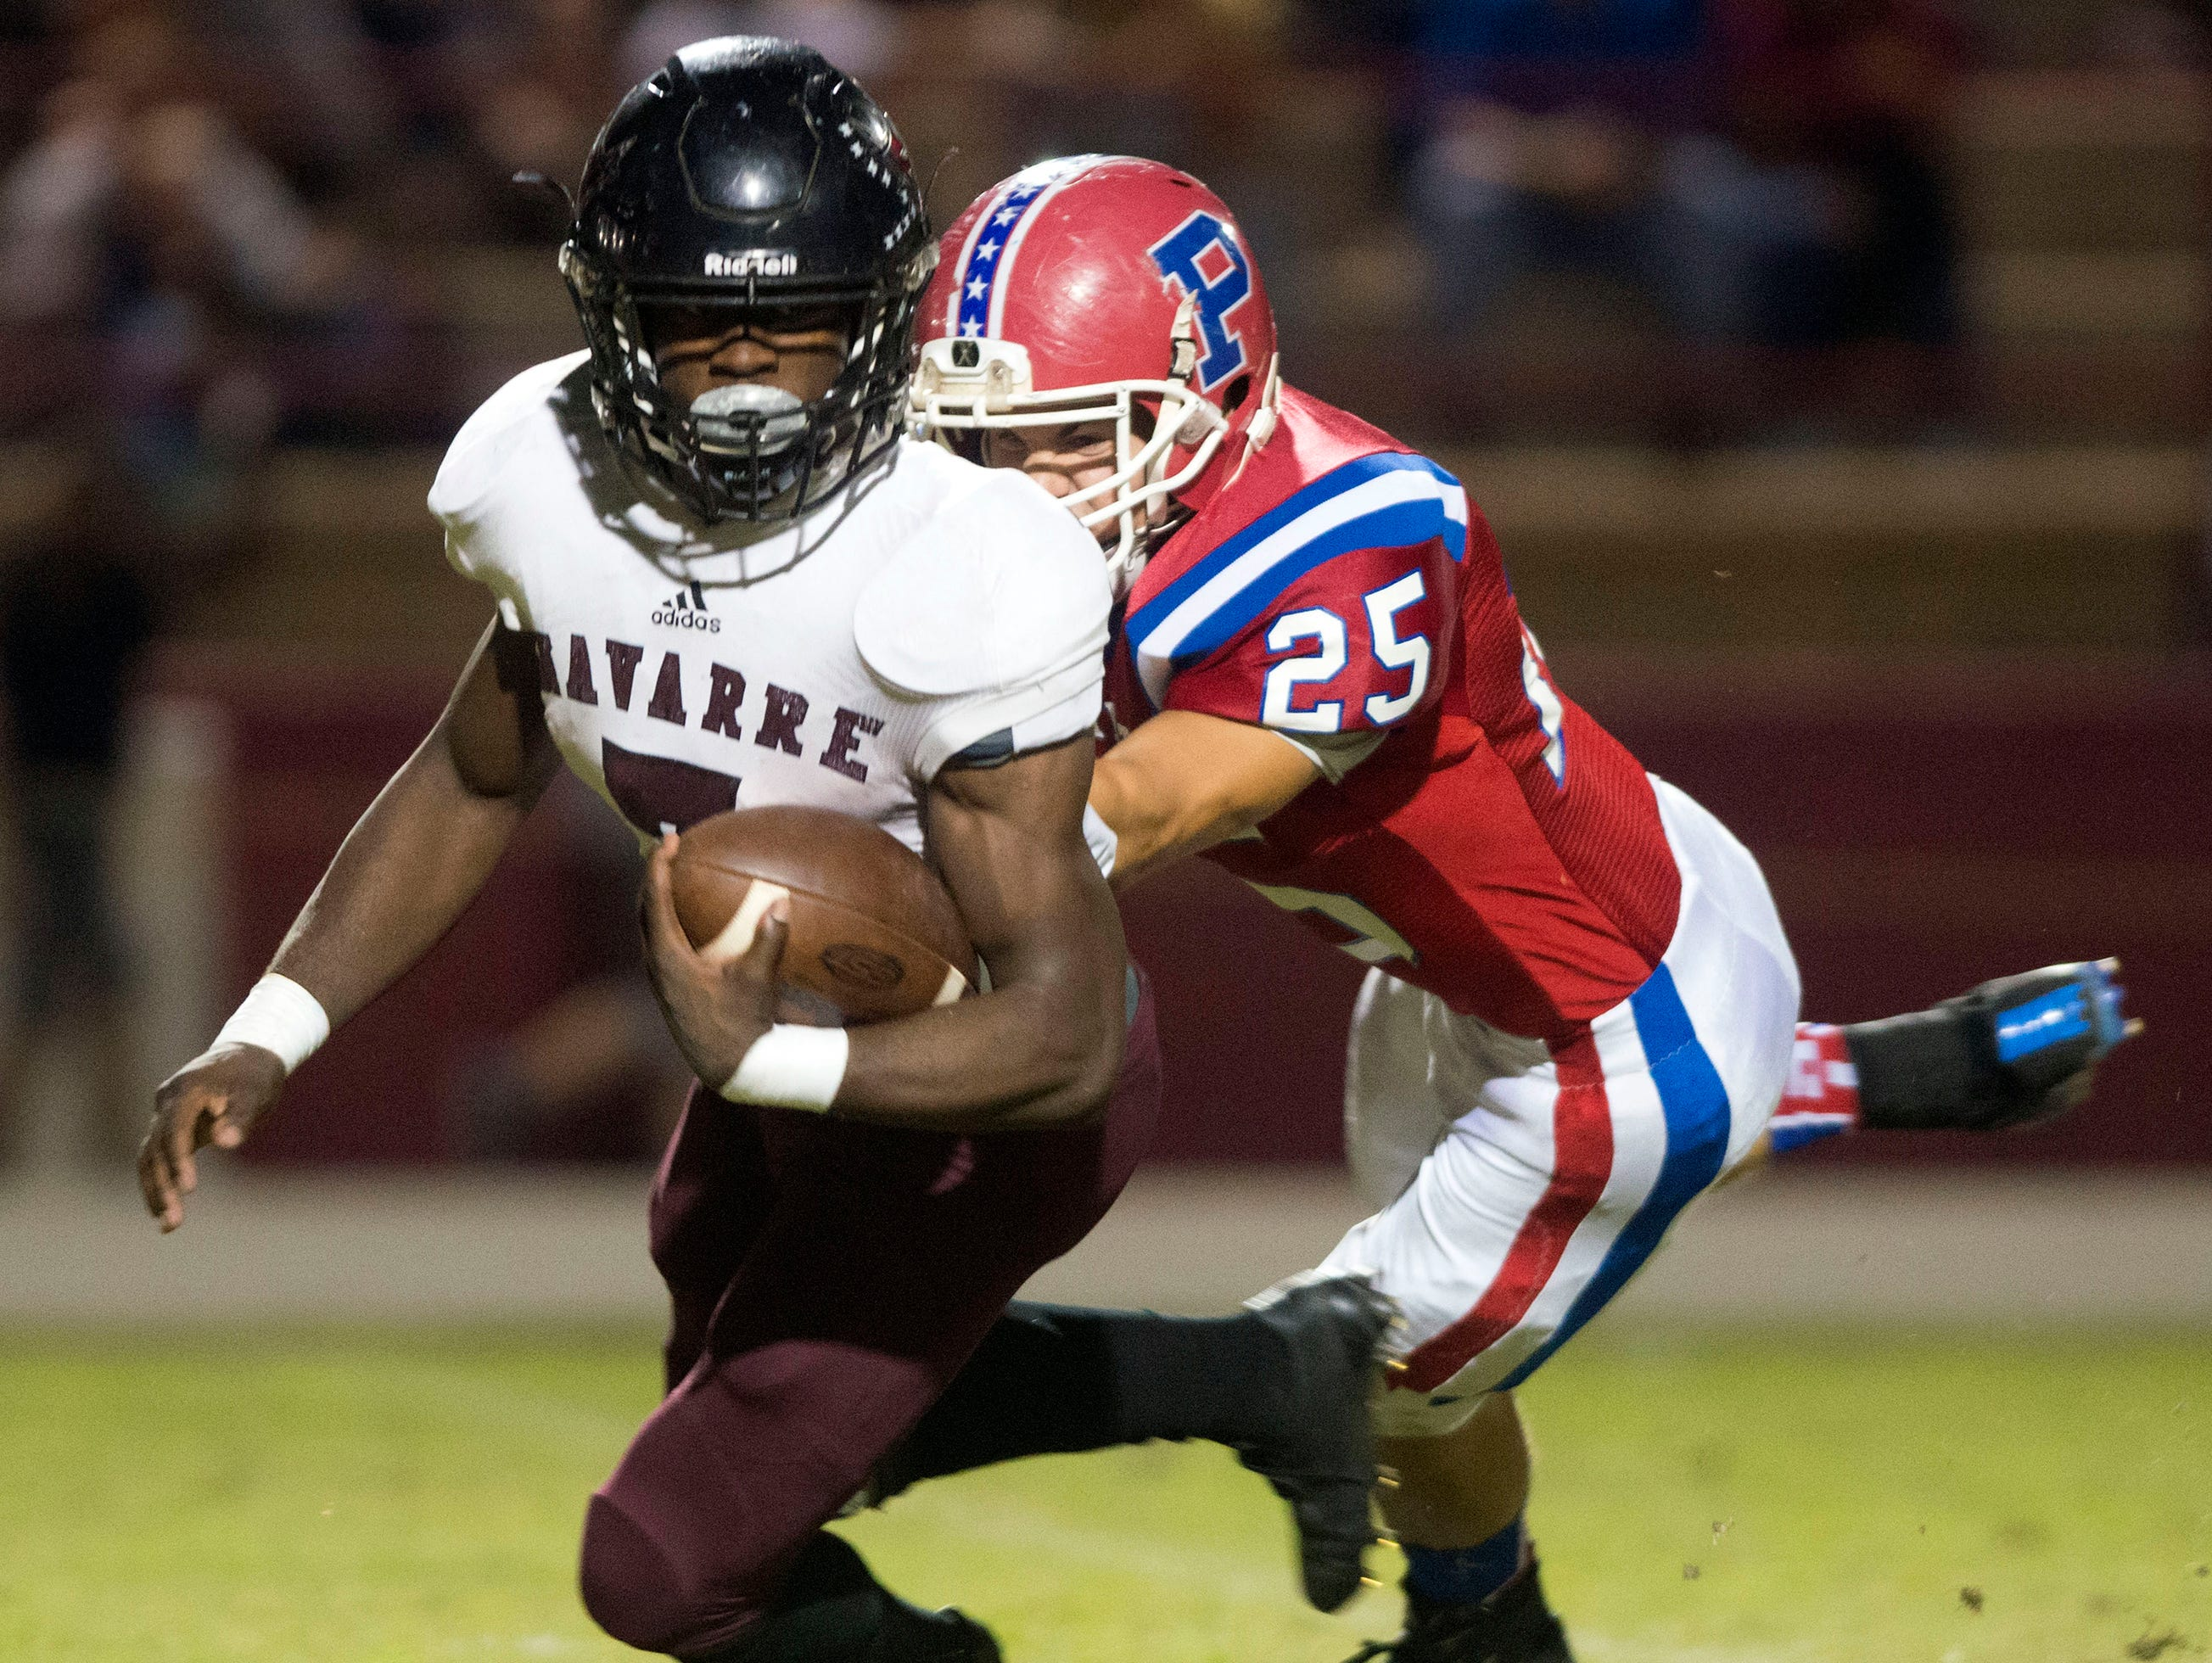 Navarre High School star running back Michael Carter (No. 7) gets wrapped up behind the line of scrimmage by the Pace High School line backer, Gatlin Lowe, (No.25) during the District 2-6A matchup Friday night.